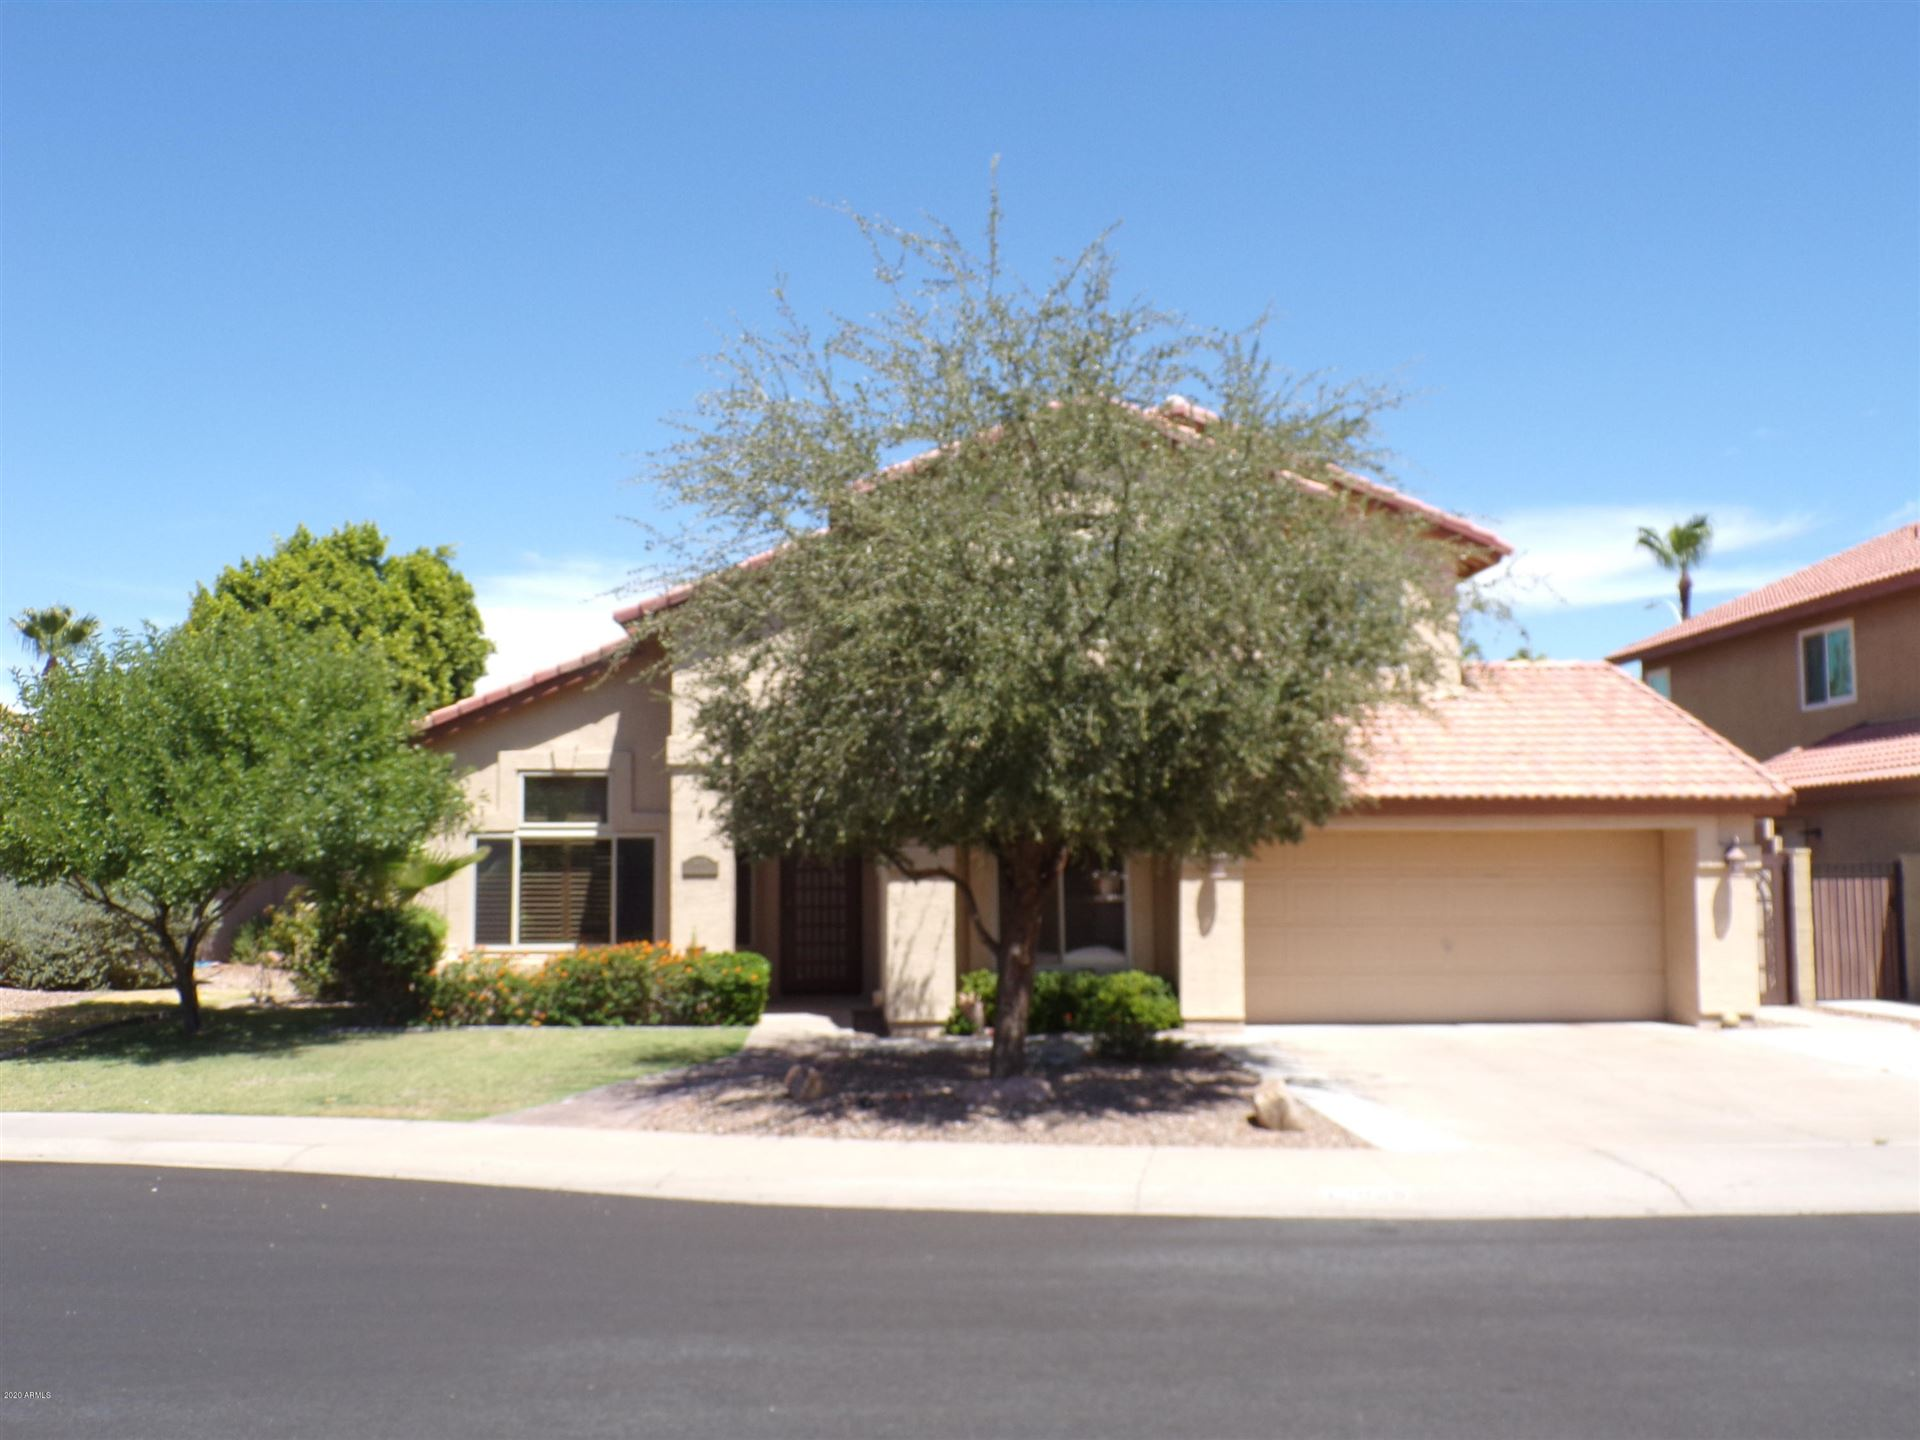 Property Image Of 16638 S 38Th Way In Phoenix, Az